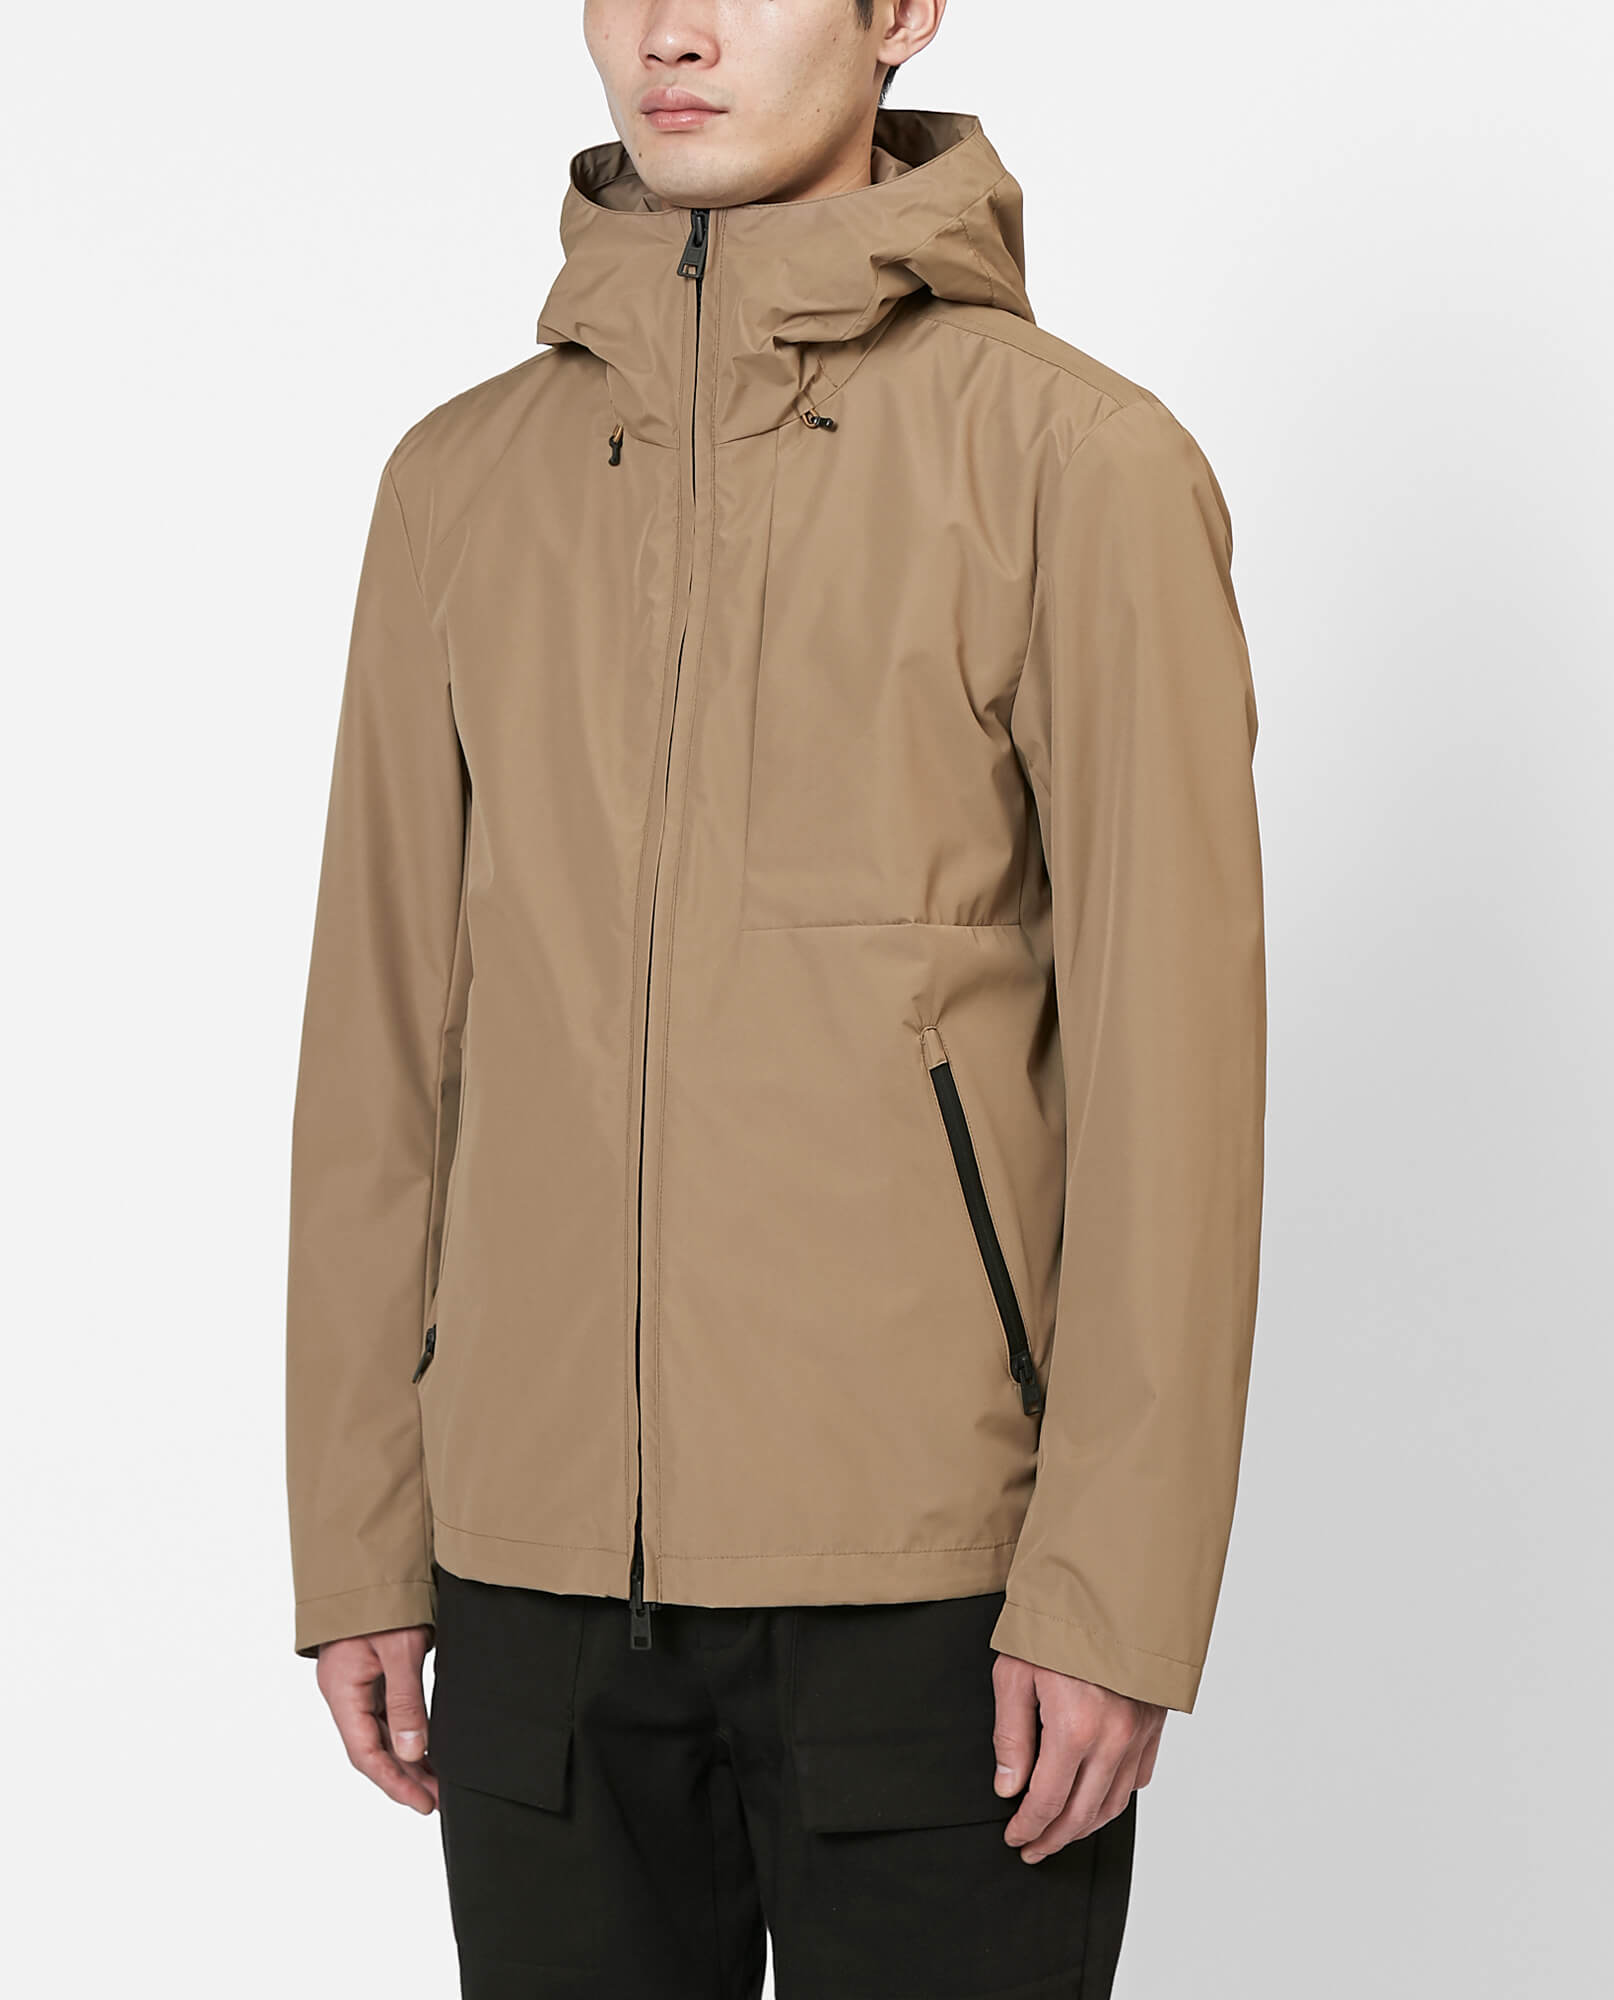 PACIFIC JACKET